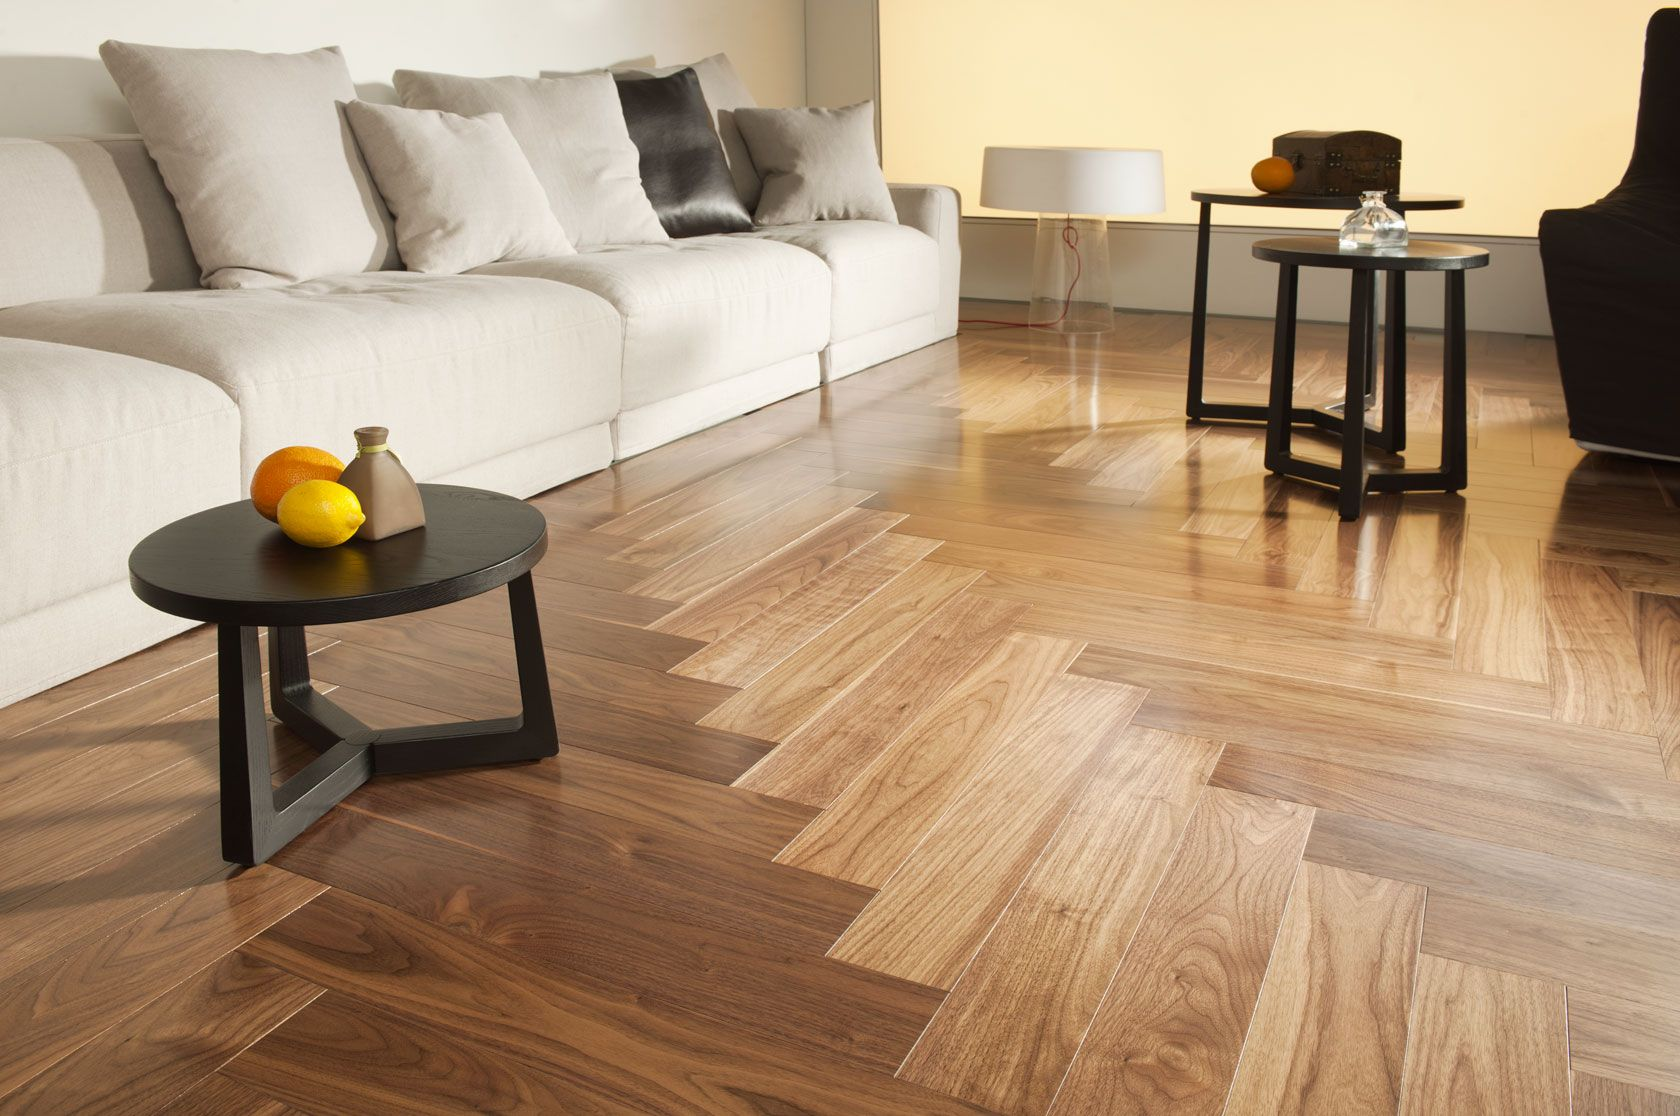 Brandfloors give a huge discount on all types of flooring